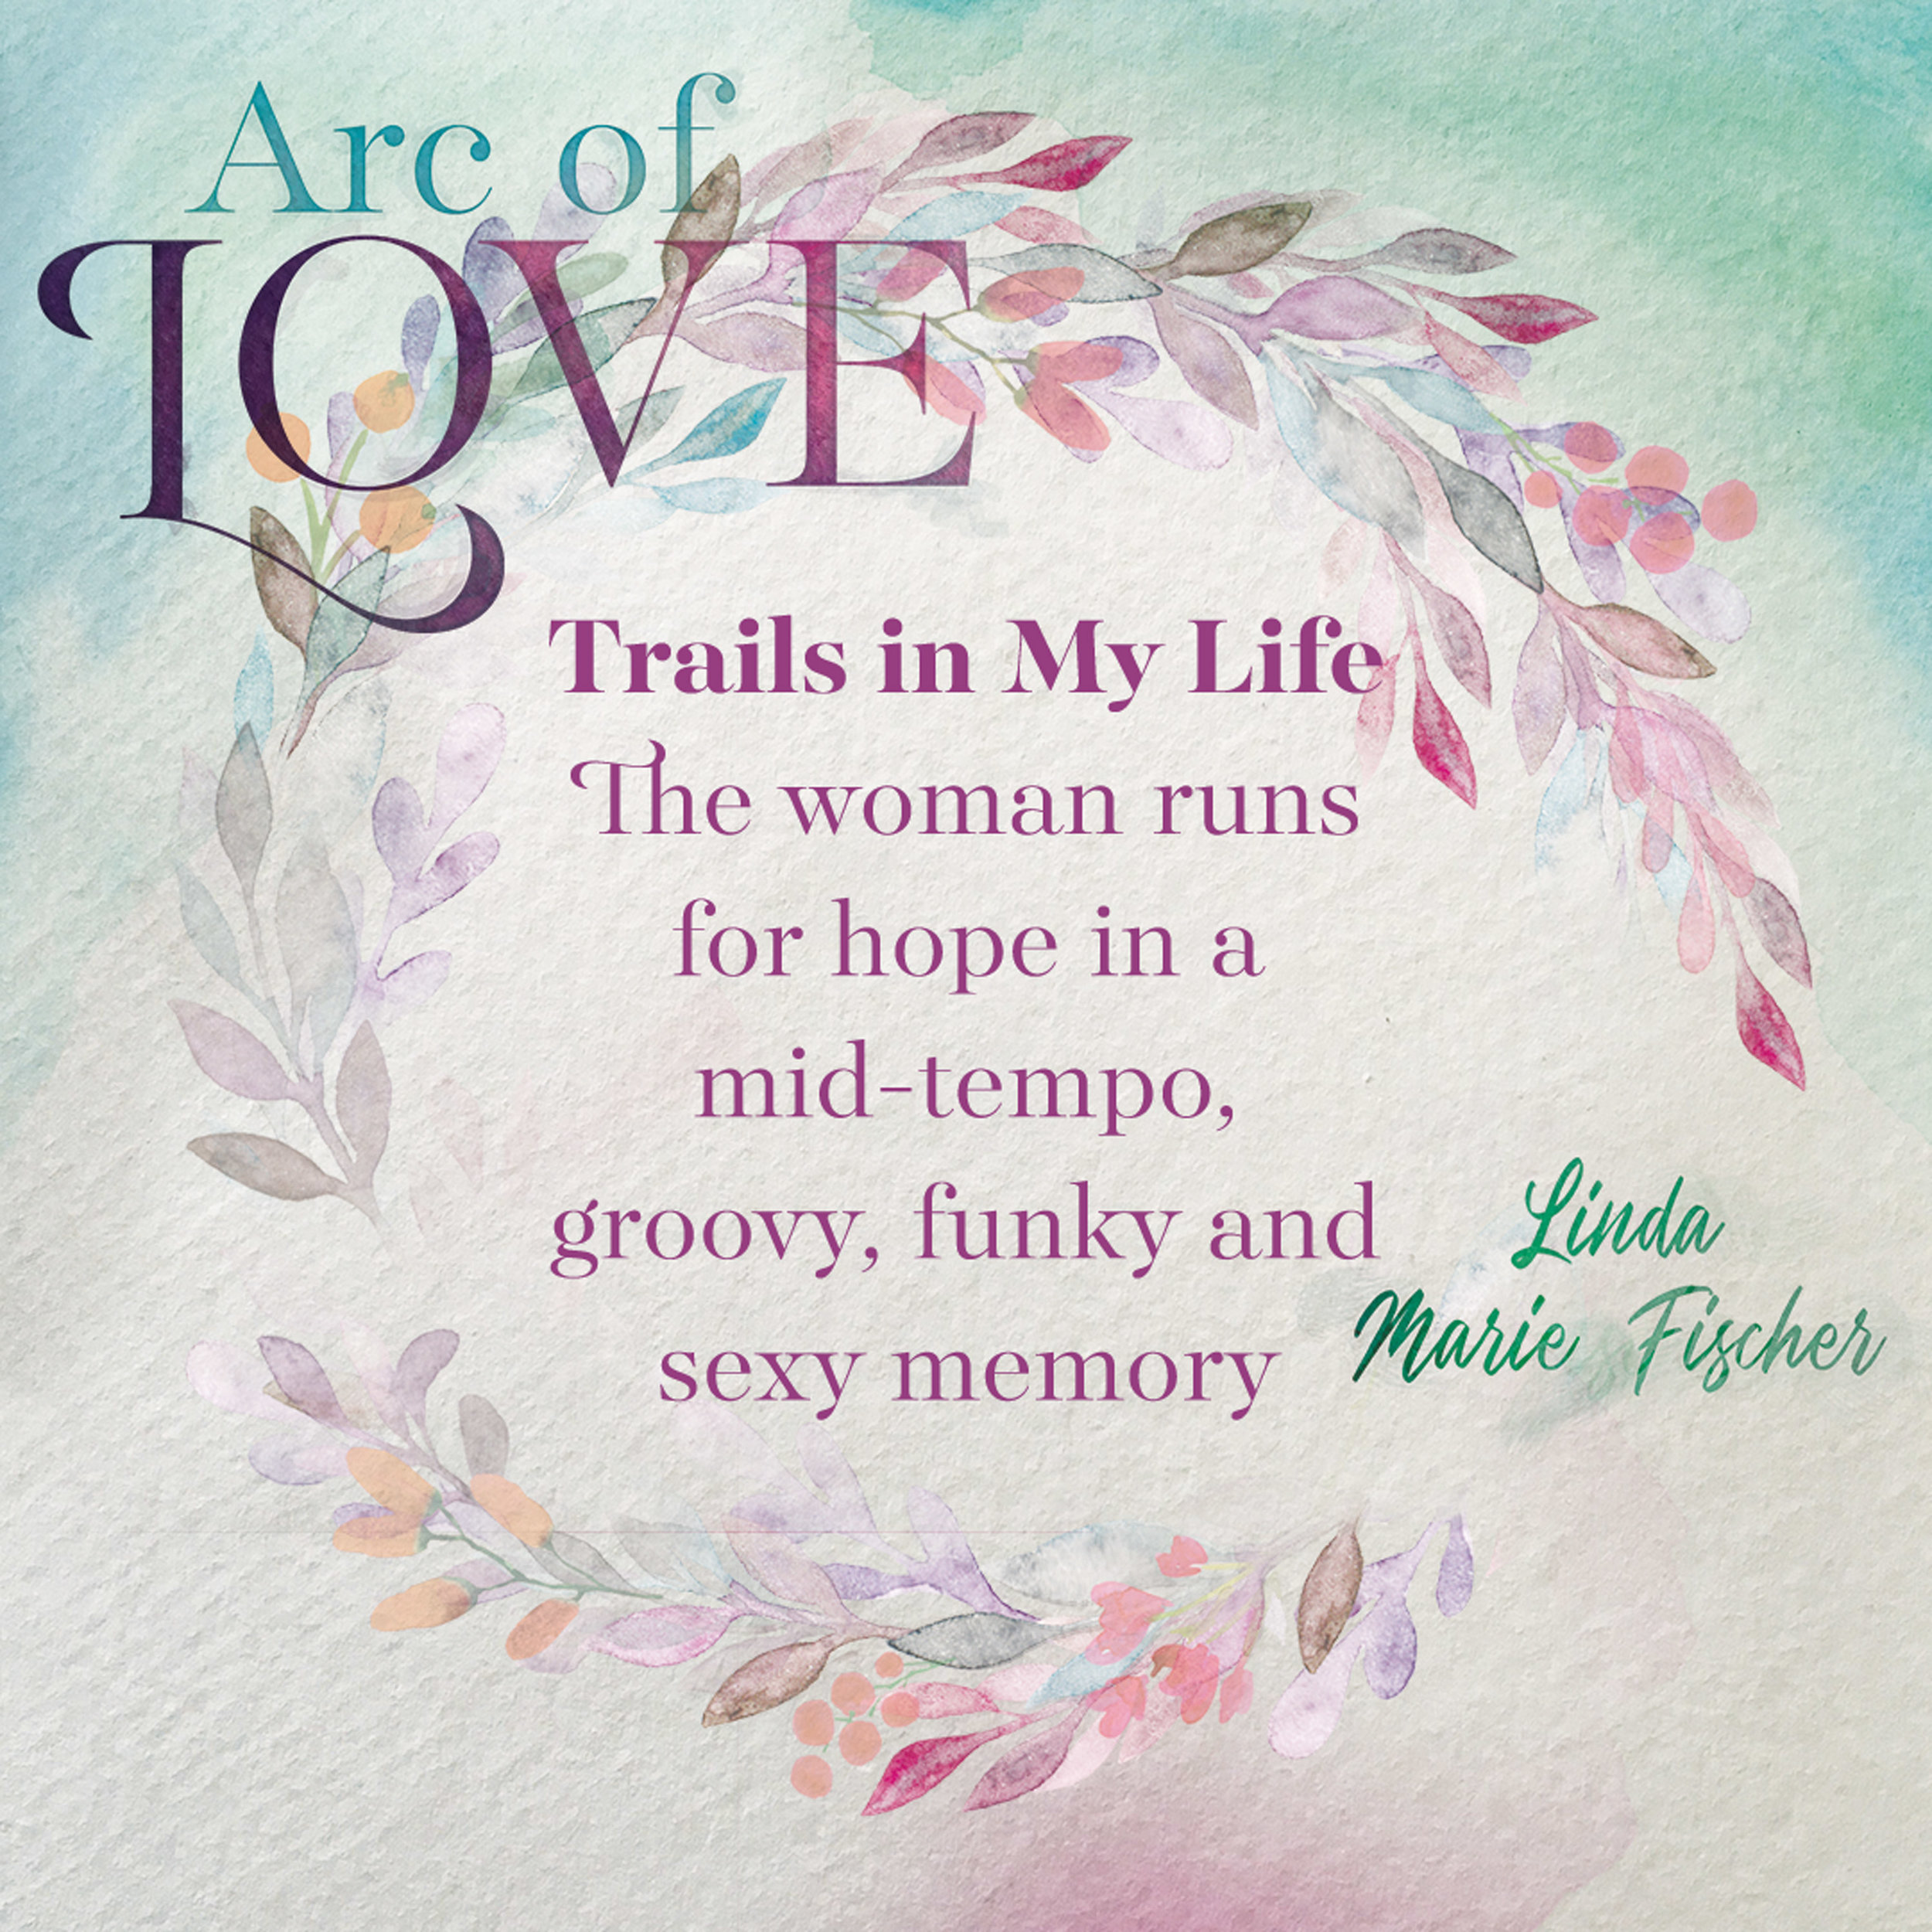 Arc of Love - Trails in My Life.jpg